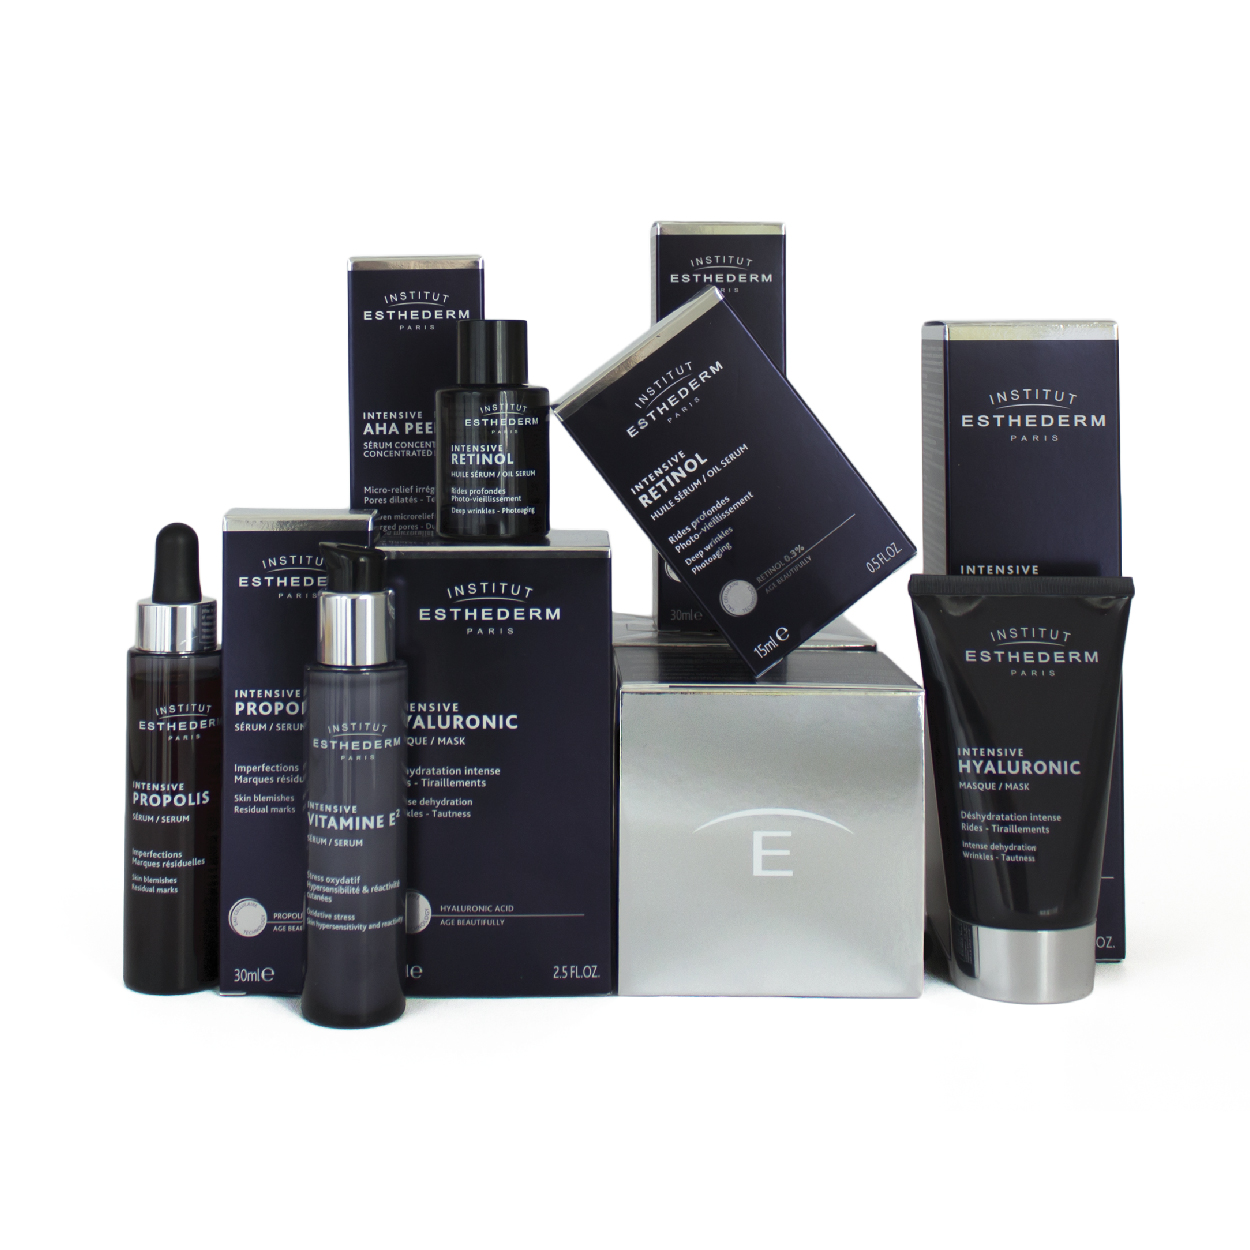 1703-FACTORY-ESTHEDERM-PHOTOS-05